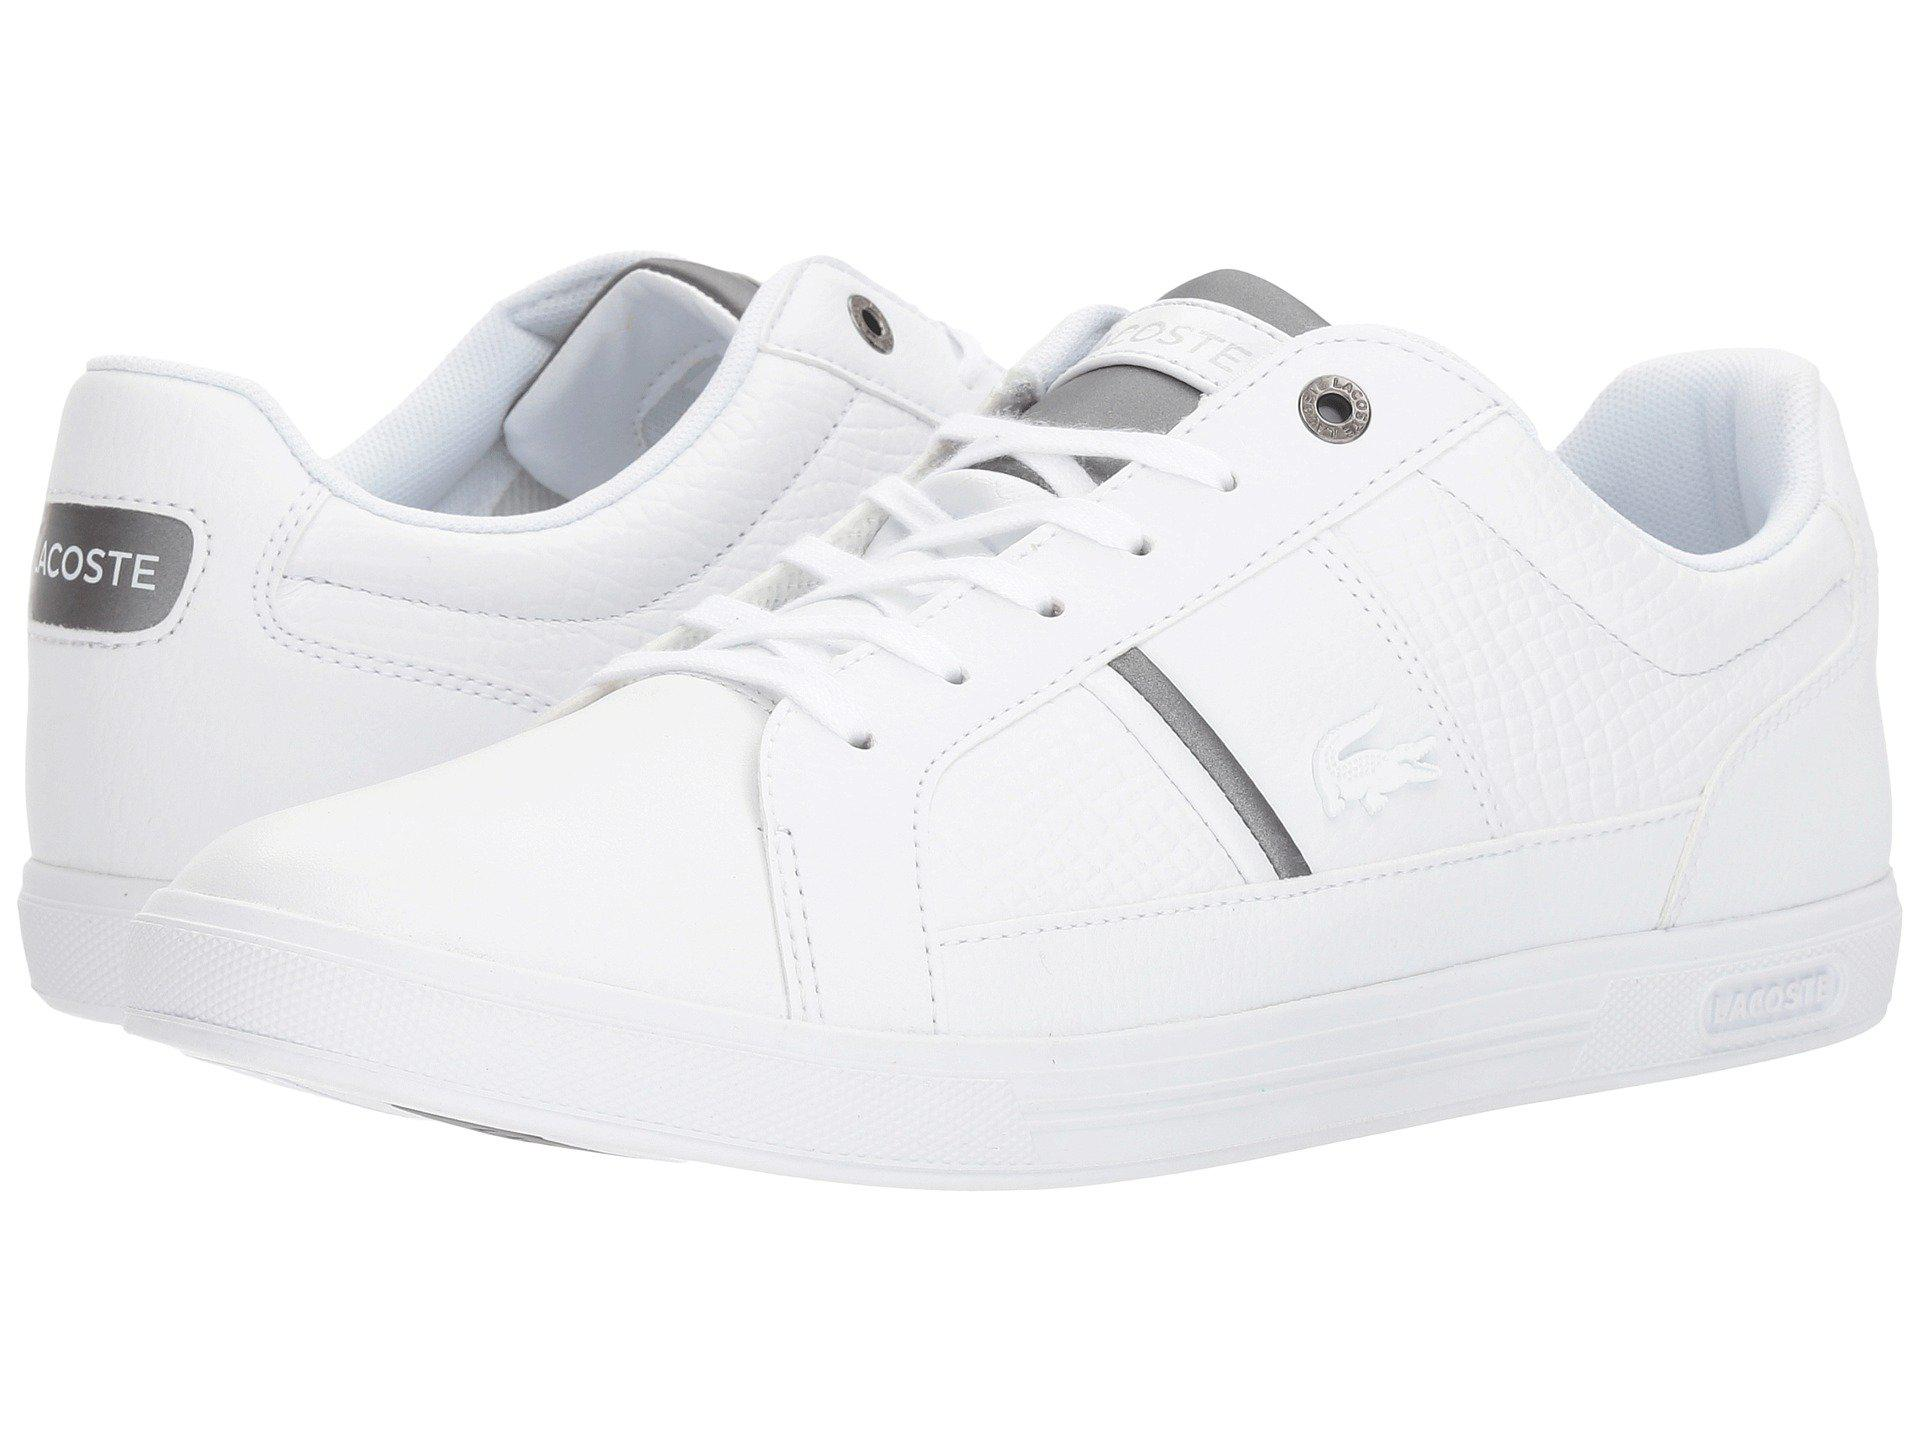 b2c36739f1a0e9 Lyst - Lacoste Europa 417 1 Sport (white) Men s Shoes in White for Men